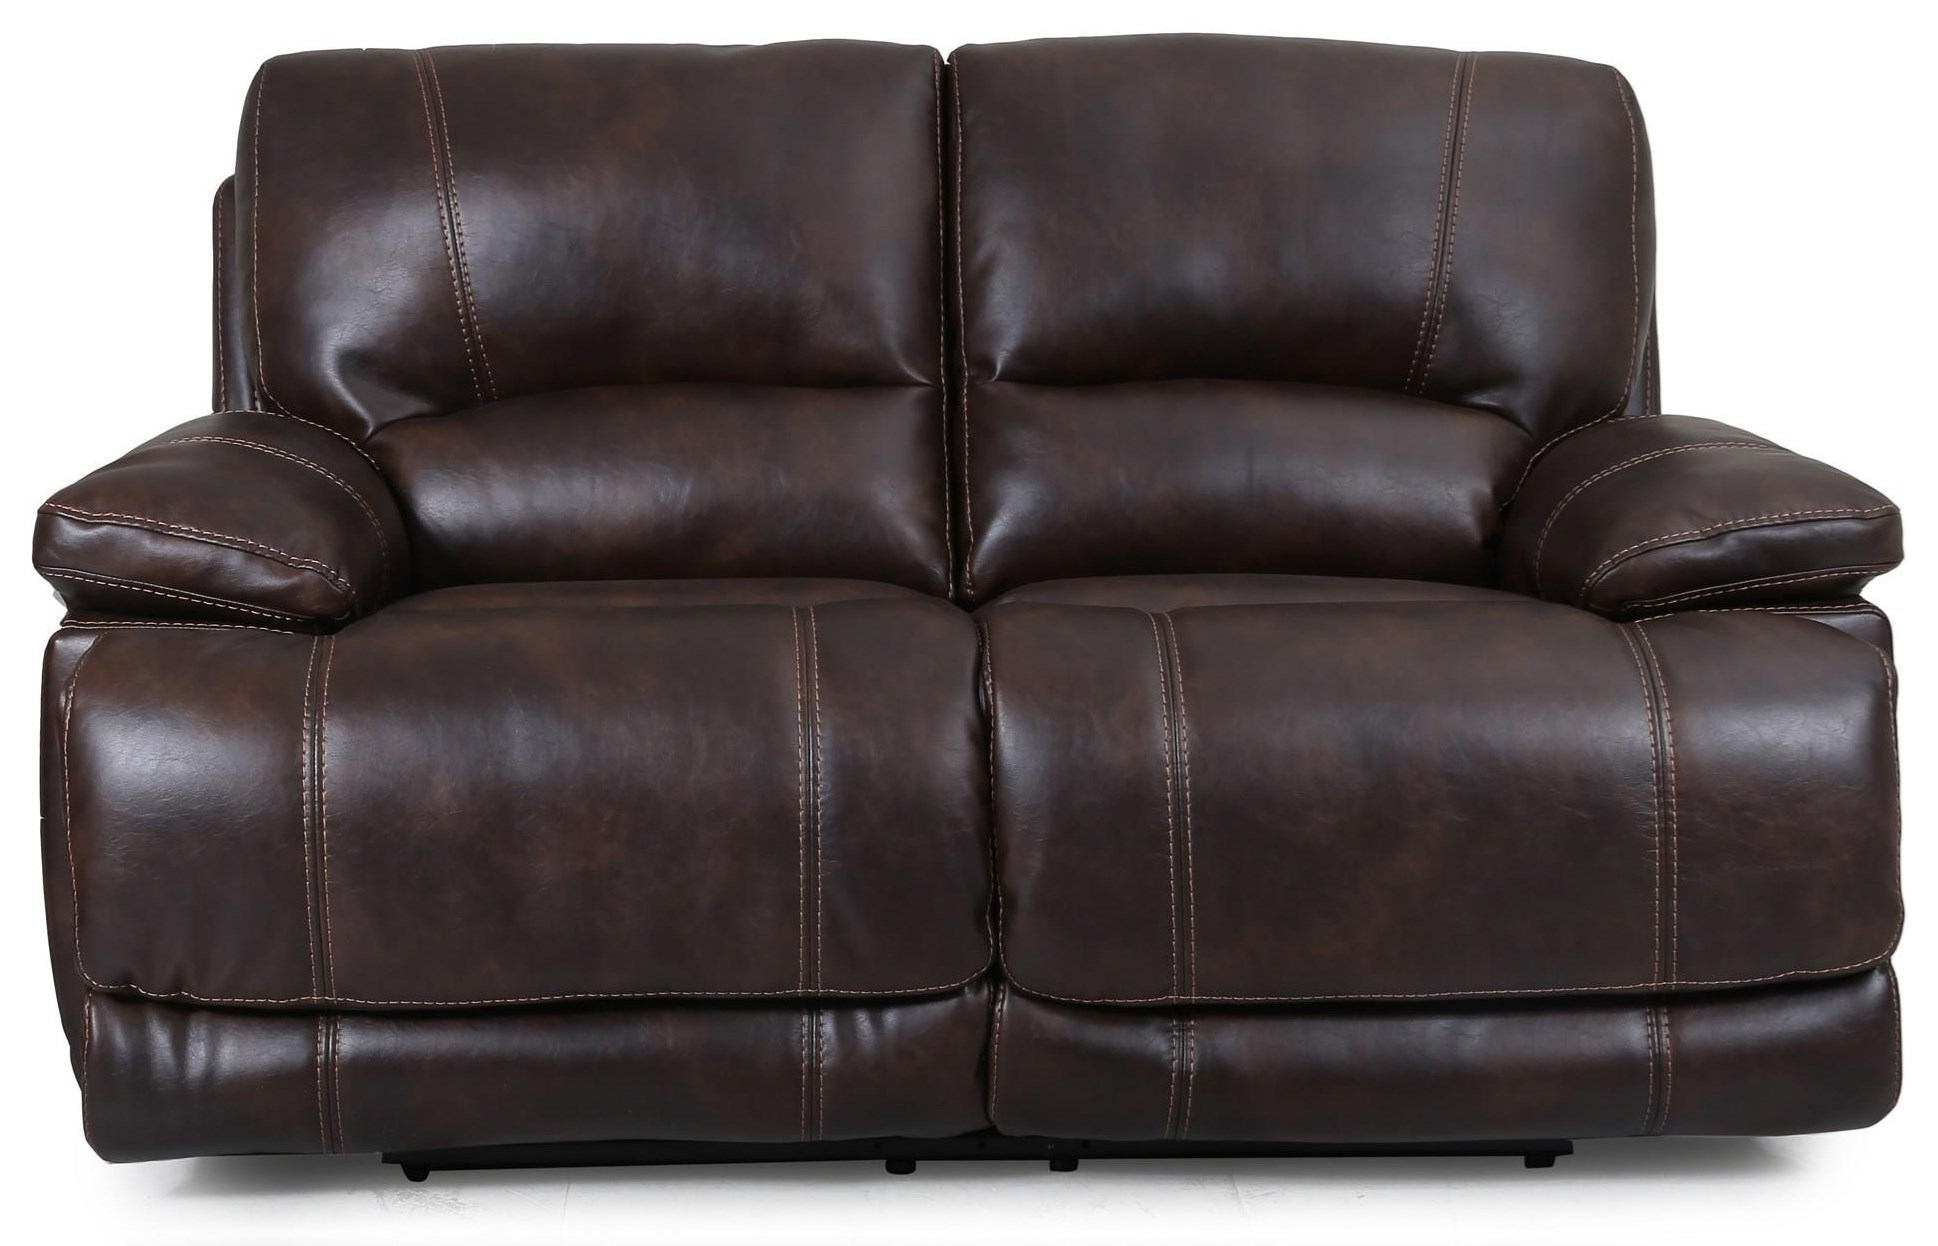 8861M MANUAL - MOTION Reclining Love Seat by Cheers Sofa at Westrich Furniture & Appliances